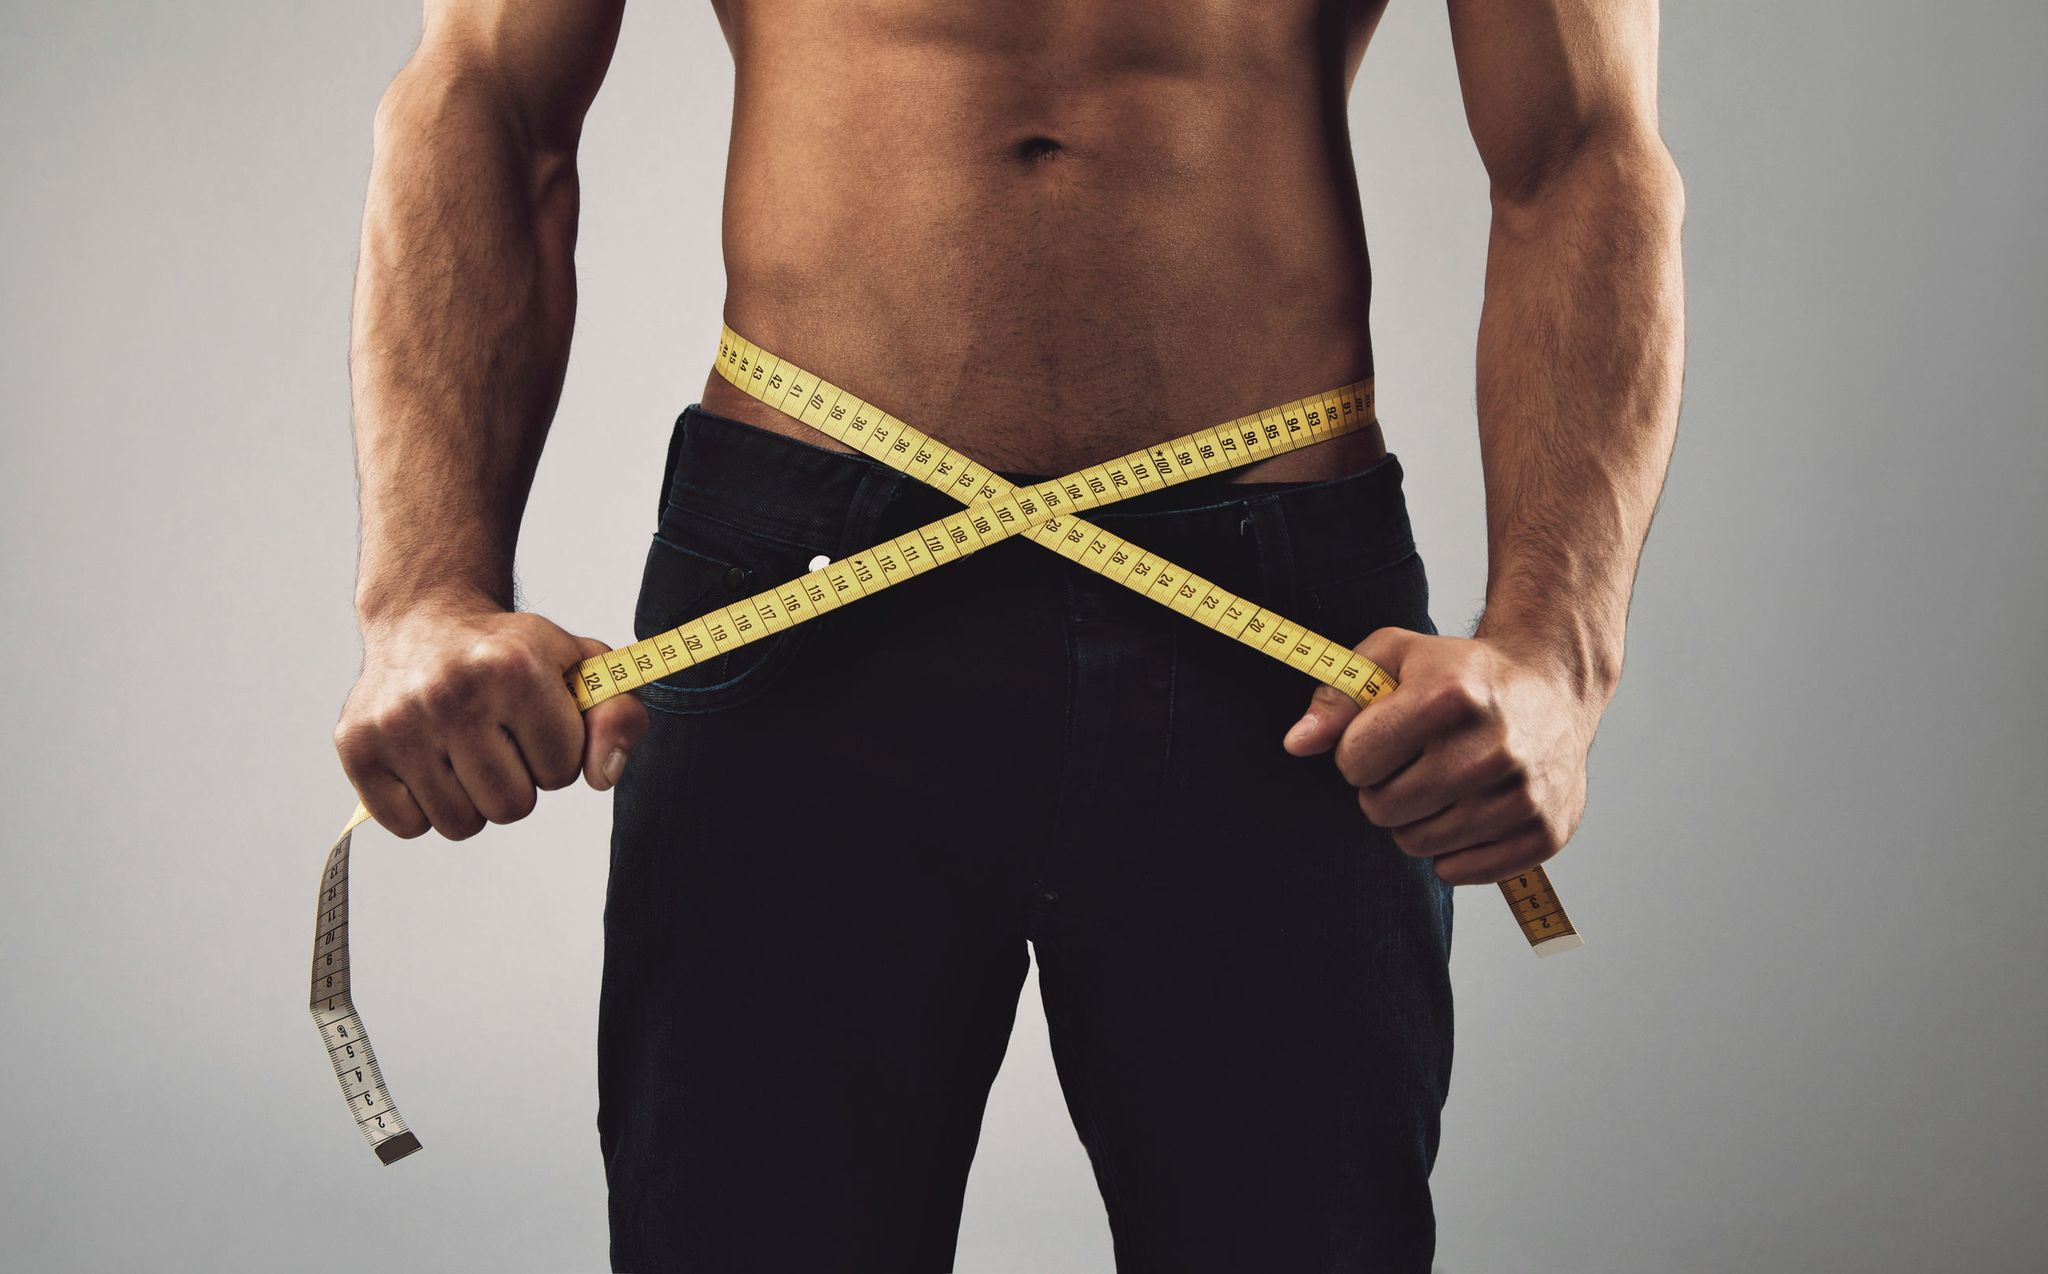 man using fat burners for weight loss